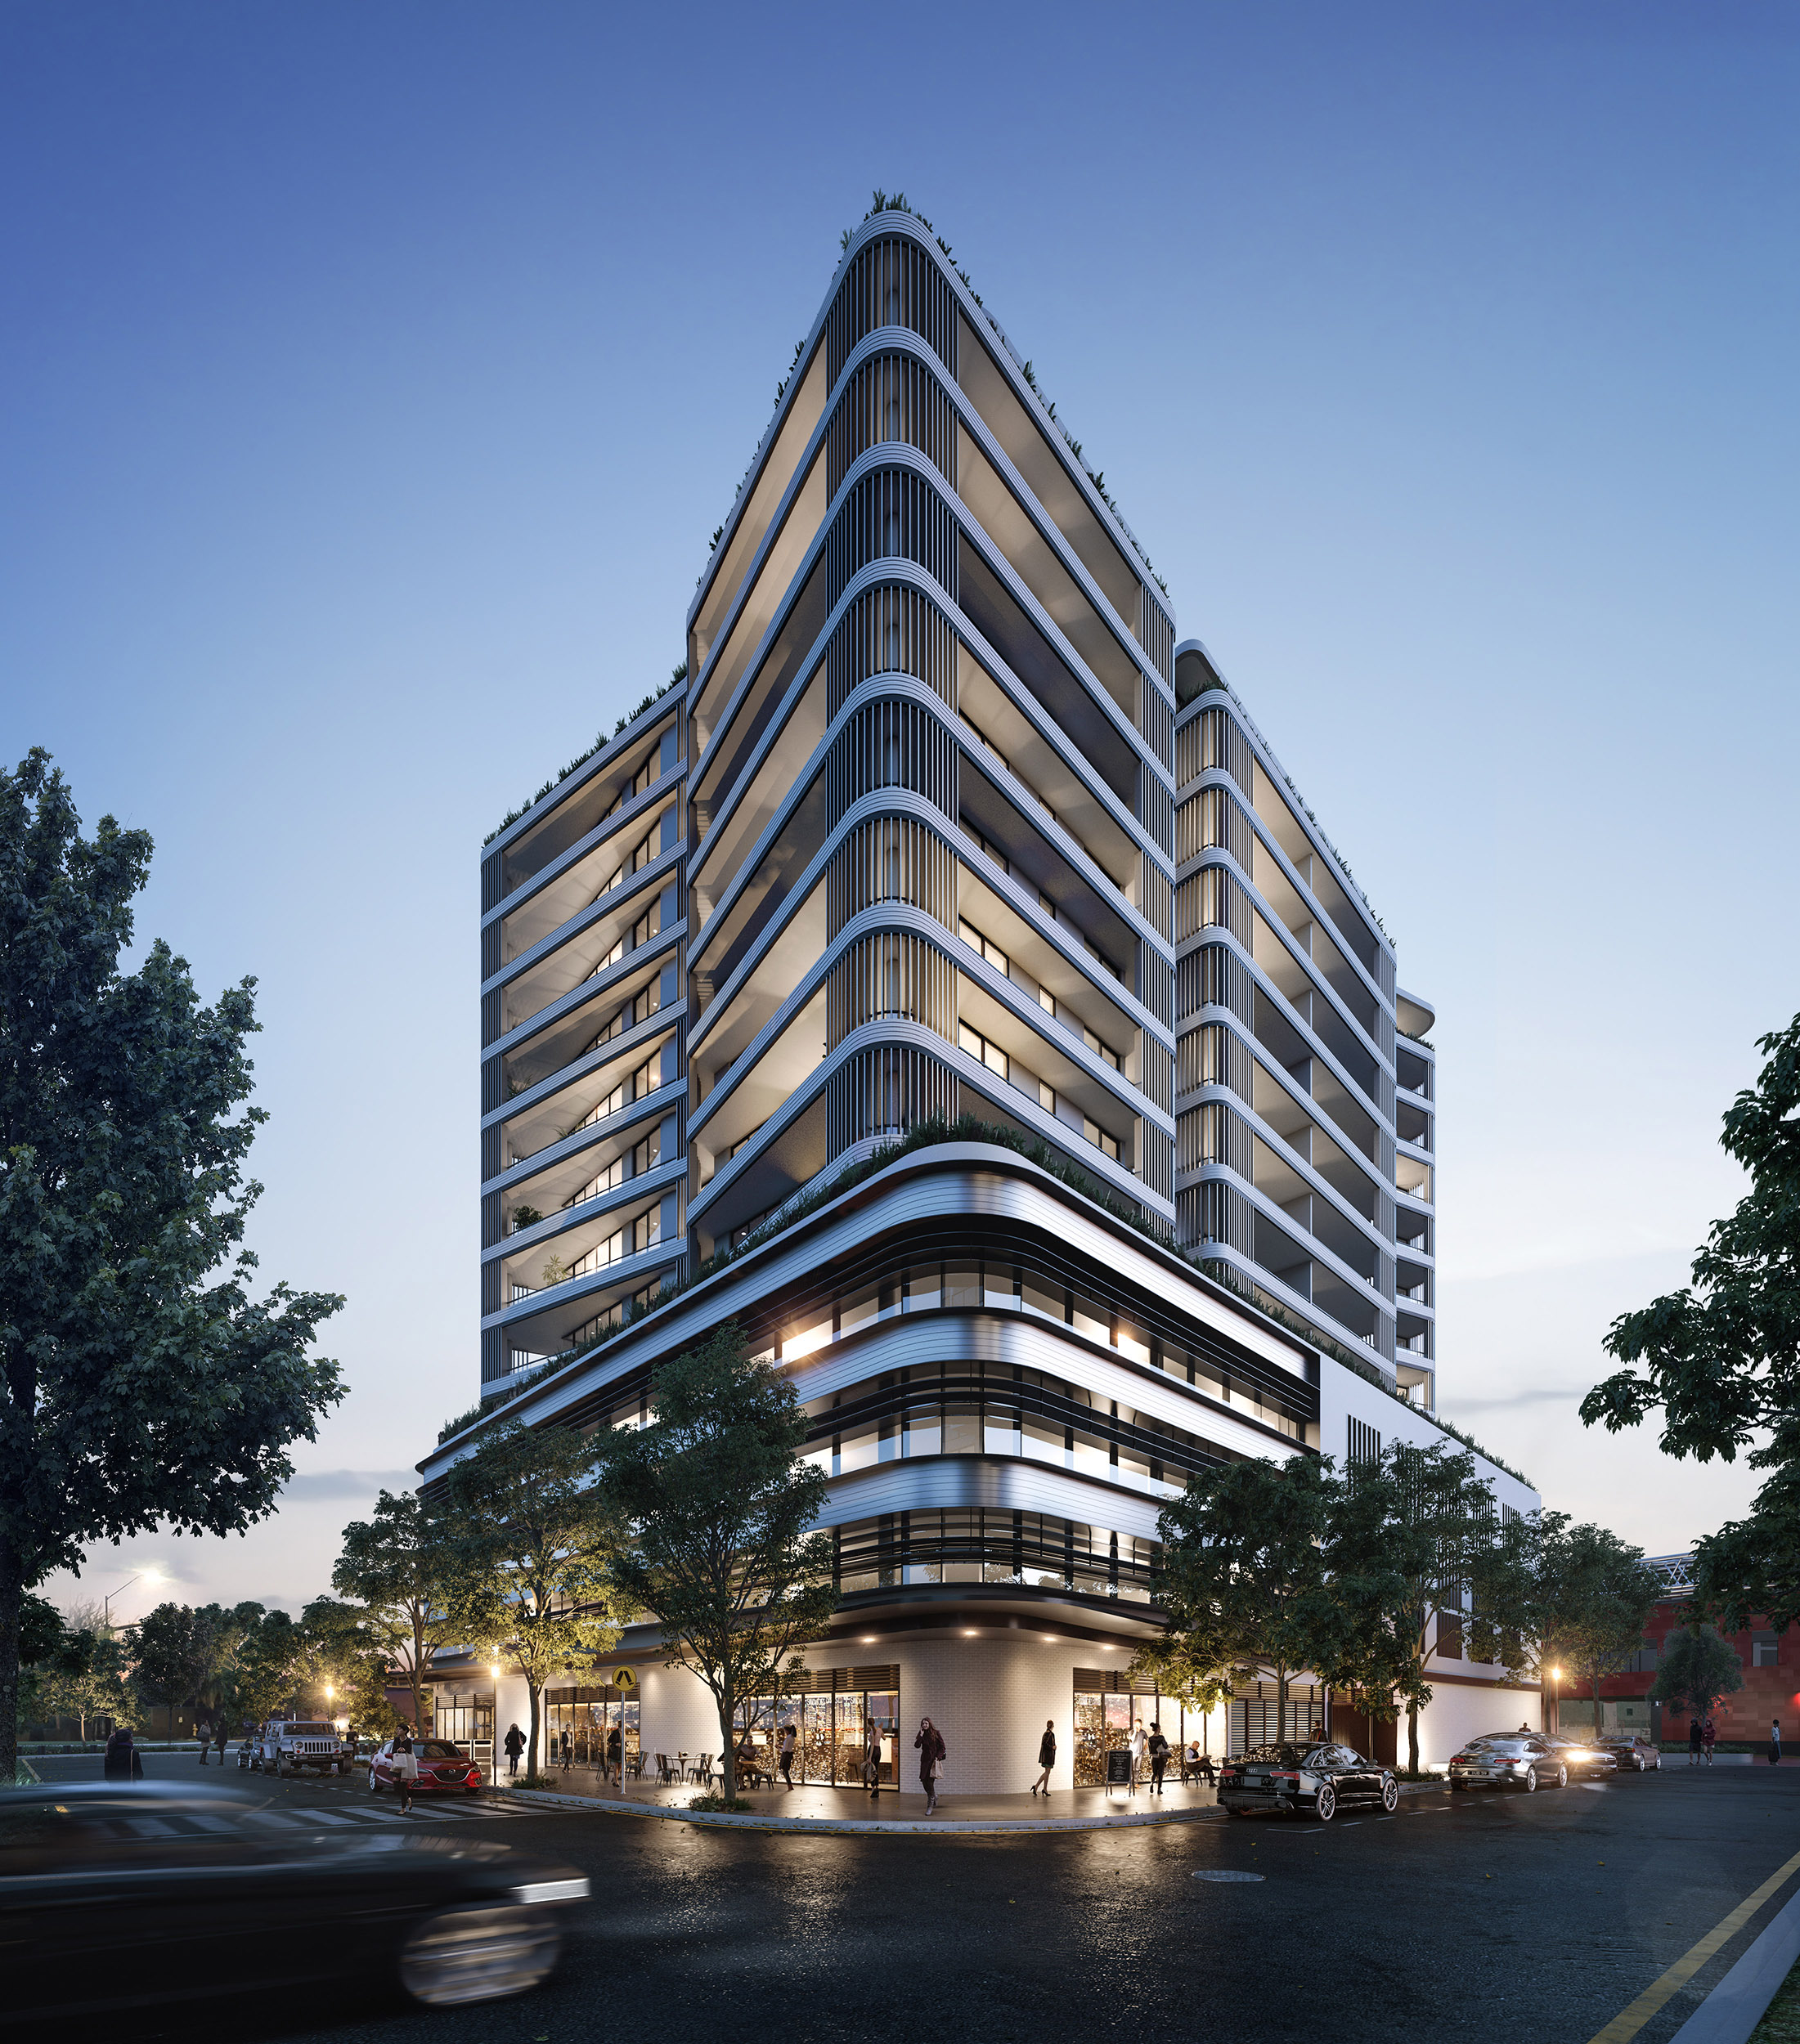 Located at 10 Dangar Street, Wickham, the development totals 97 residential apartments, targeting the sophisticated, downsizer market featuring generous unit sizes, luxurious fixtures, fittings and finishes.